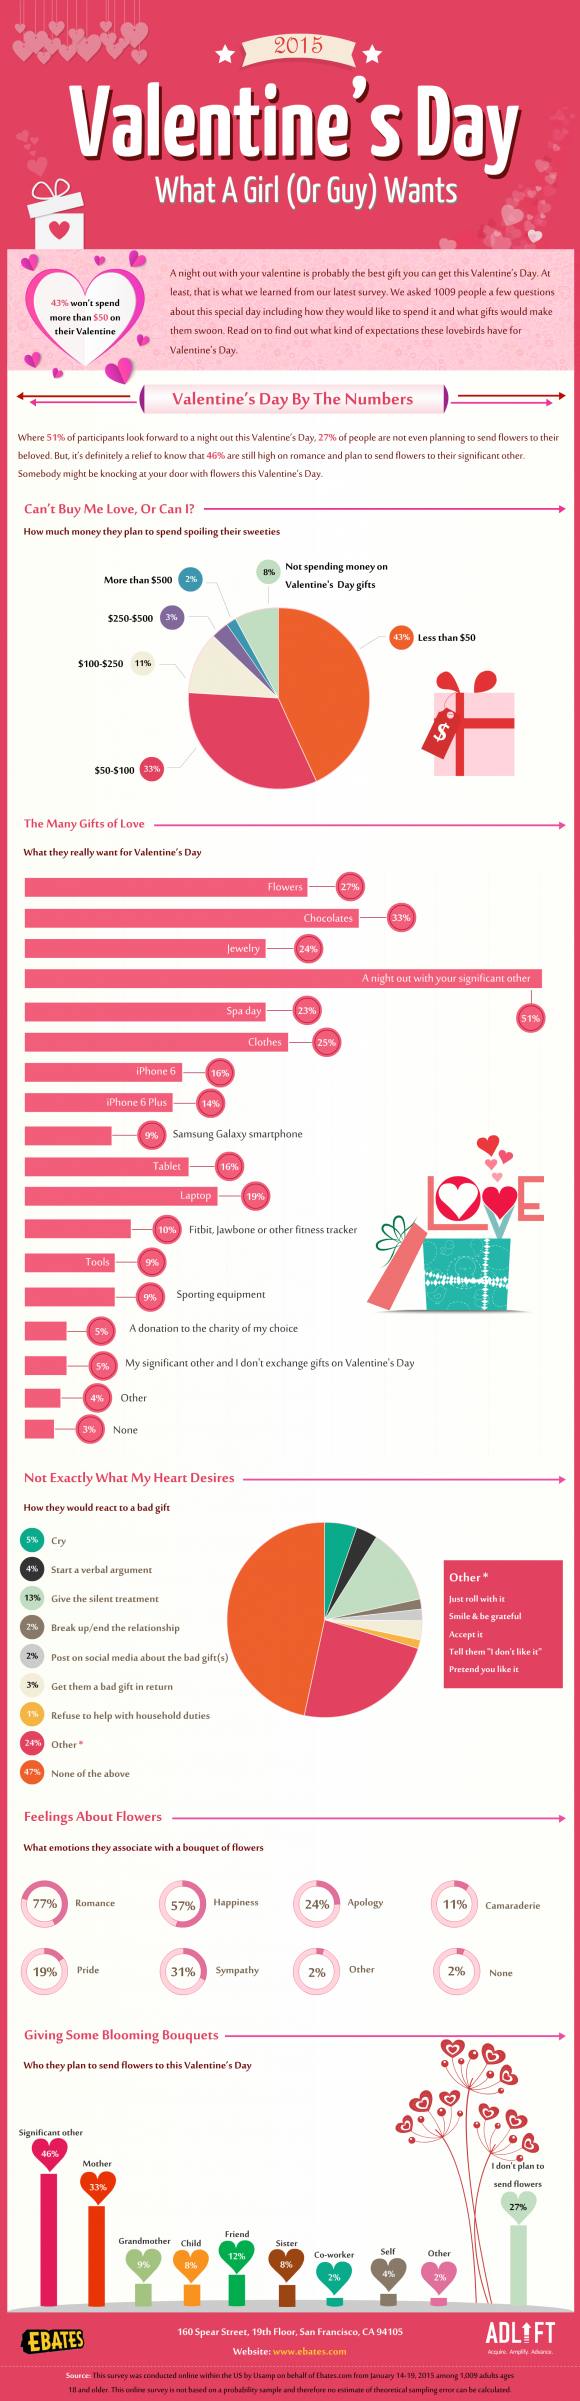 Get the Facts About Valentine's Day